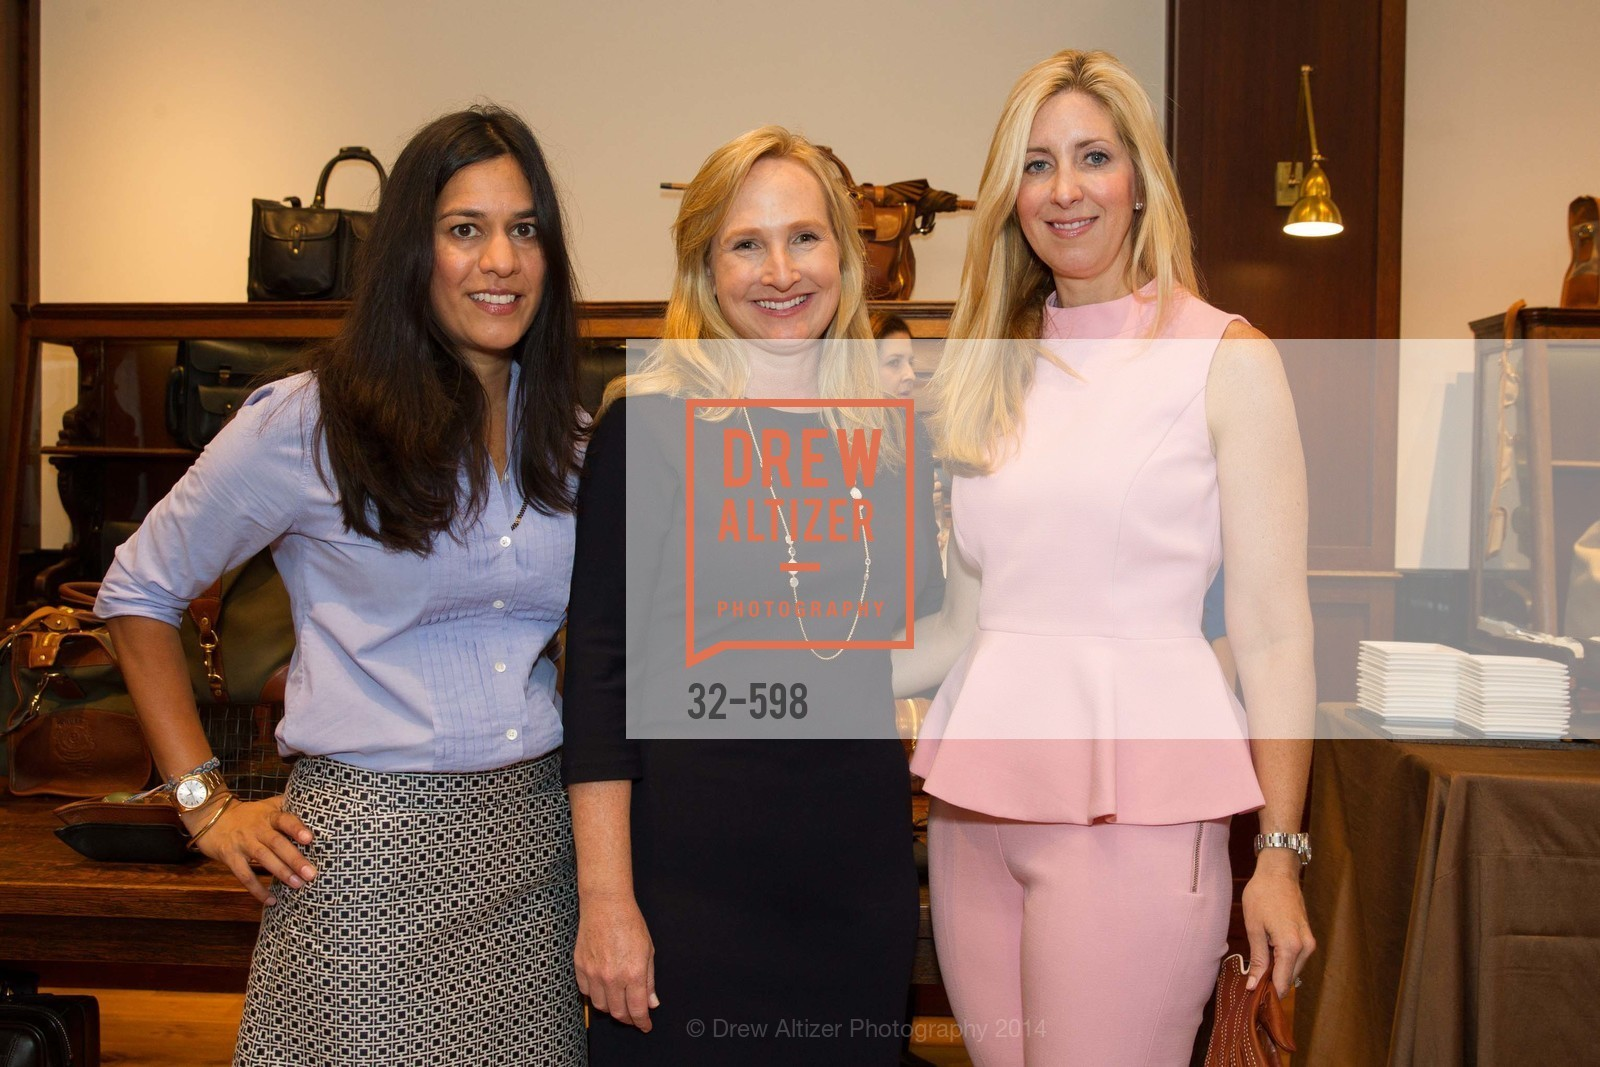 Krutika Patel, Anne Pedrero, Caroline Dixon, GHURKA FALL FASHION Press Preview Honoring the ZOO BOARD, US, October 7th, 2014,Drew Altizer, Drew Altizer Photography, full-service agency, private events, San Francisco photographer, photographer california